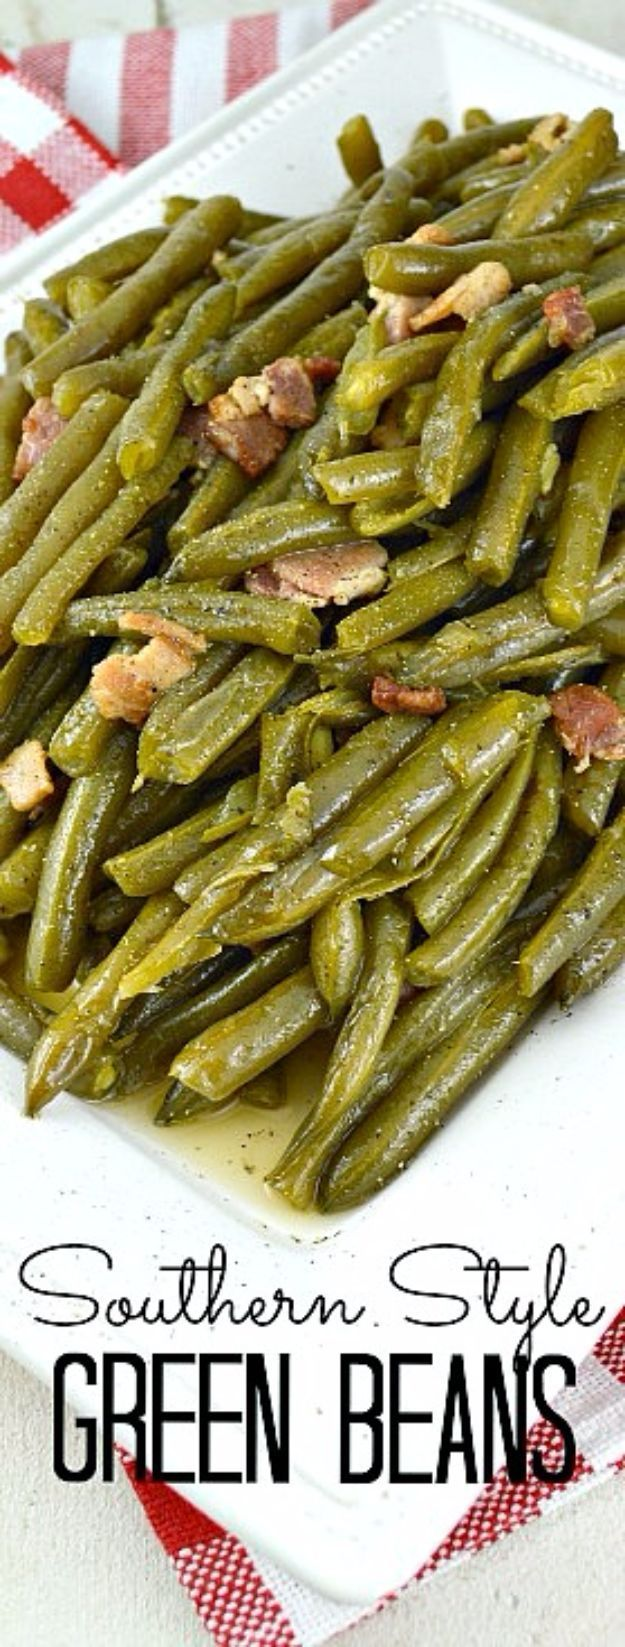 Best Country Cooking Recipes - Southern Style Green Beans - Easy Recipes for Country Food Like Chicken Fried Steak, Fried Green Tomatoes, Southern Gravy, Breads and Biscuits, Casseroles and More - Breakfast, Lunch and Dinner Recipe Ideas for Families and Feeding A Crowd - Step by Step Instructions for Making Homestyle Dips, Snacks, Desserts http://diyjoy.com/country-cooking-recipes